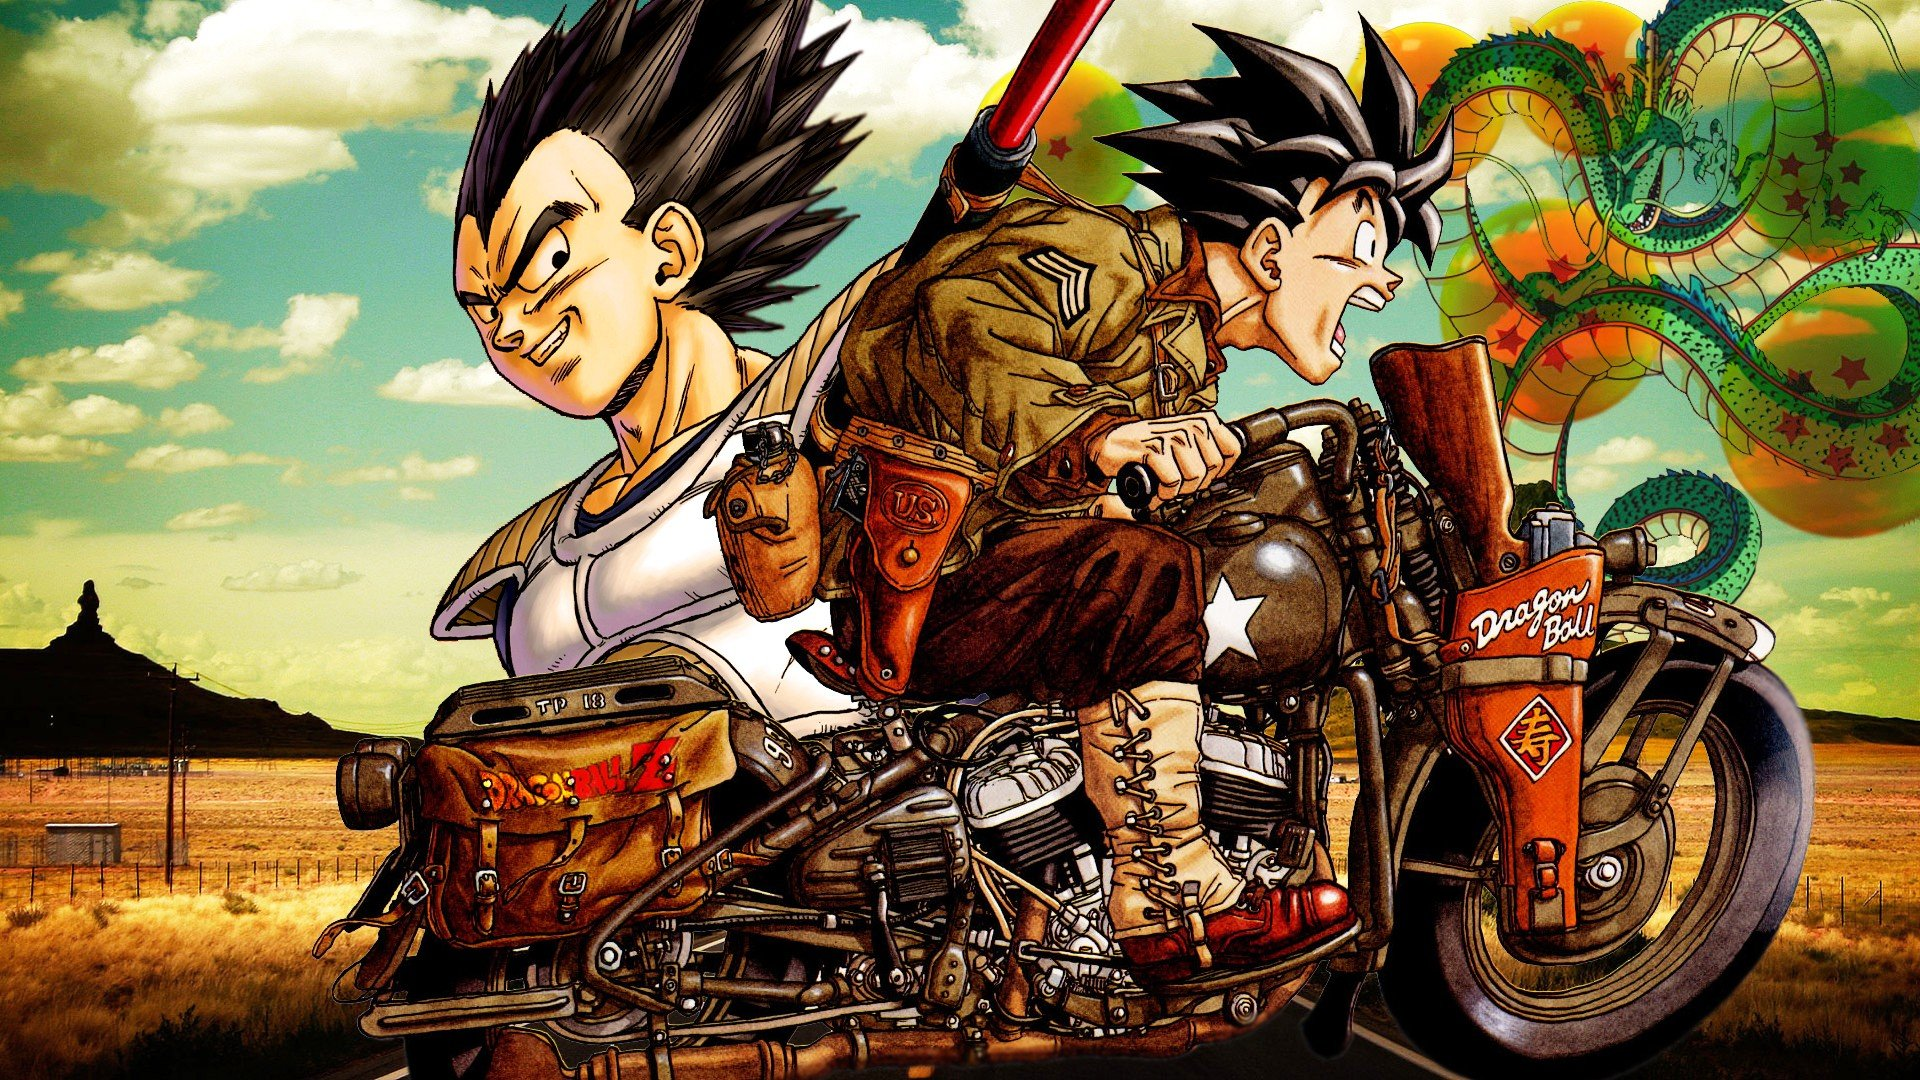 Dragon Ball Z Dbz Wallpapers 1920x1080 Full Hd 1080p